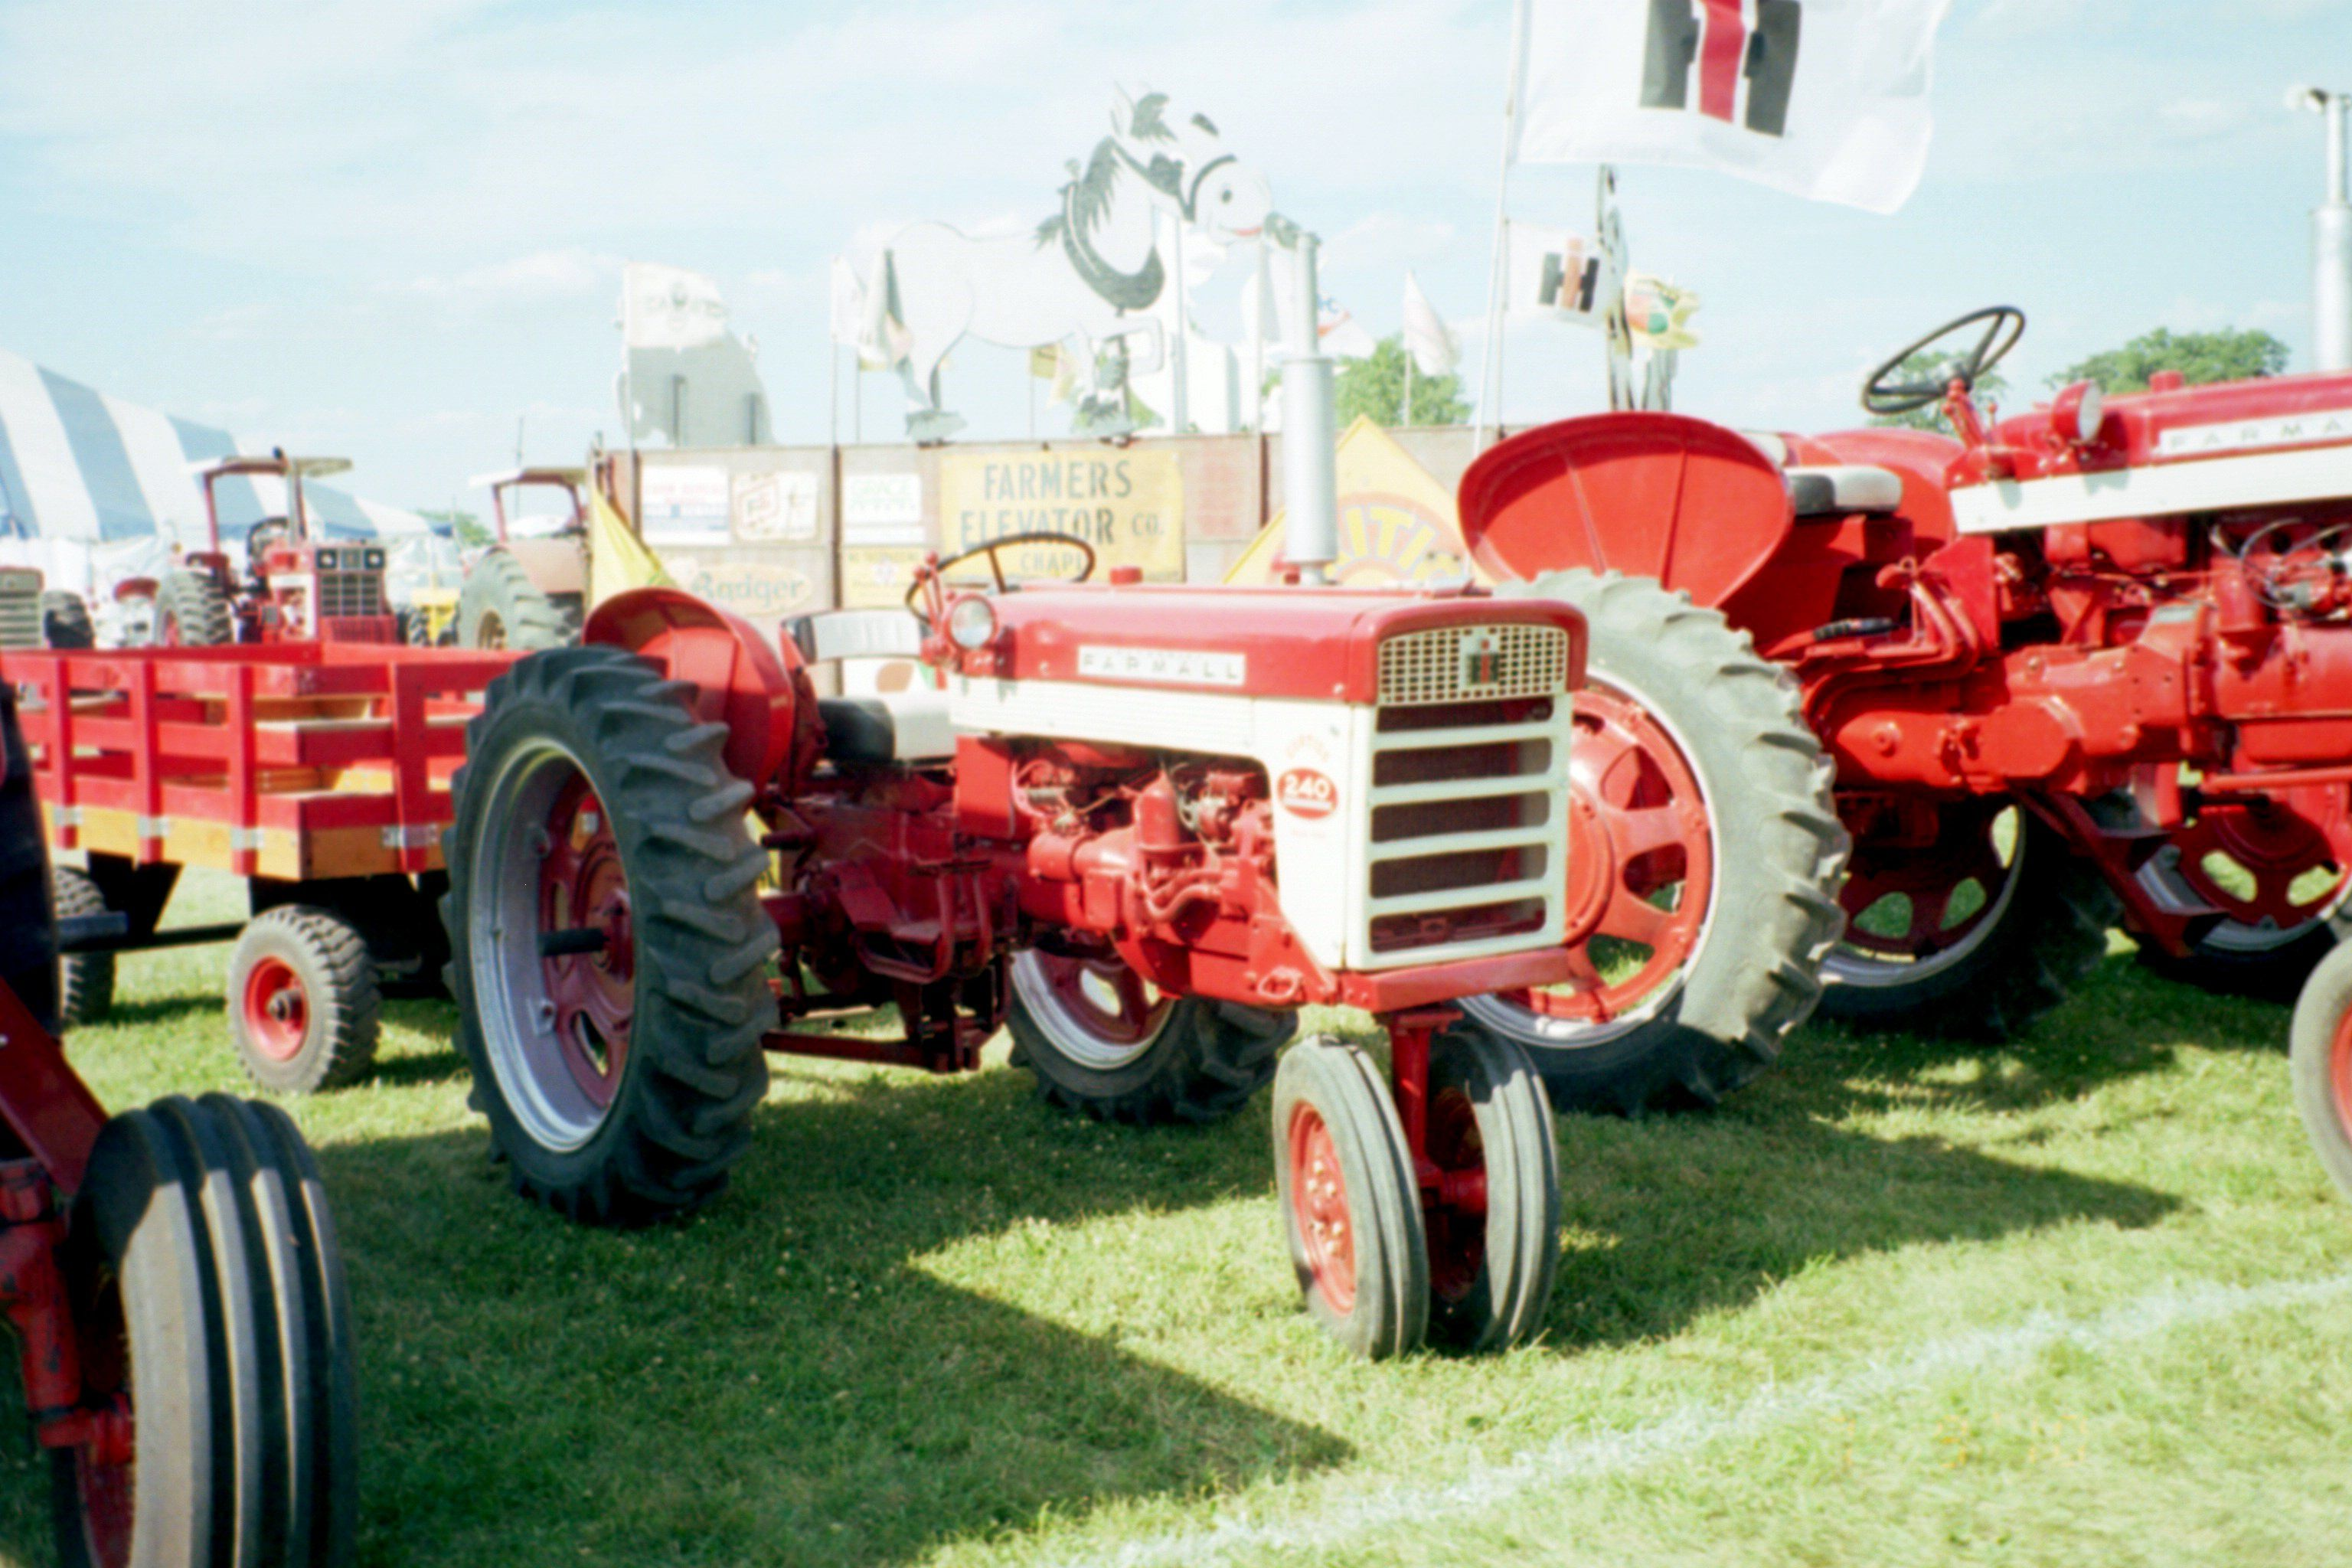 farmall 460 electrical system john deere farmall 240 tractor ih equipment my pictures tractors red  [ 3072 x 2048 Pixel ]